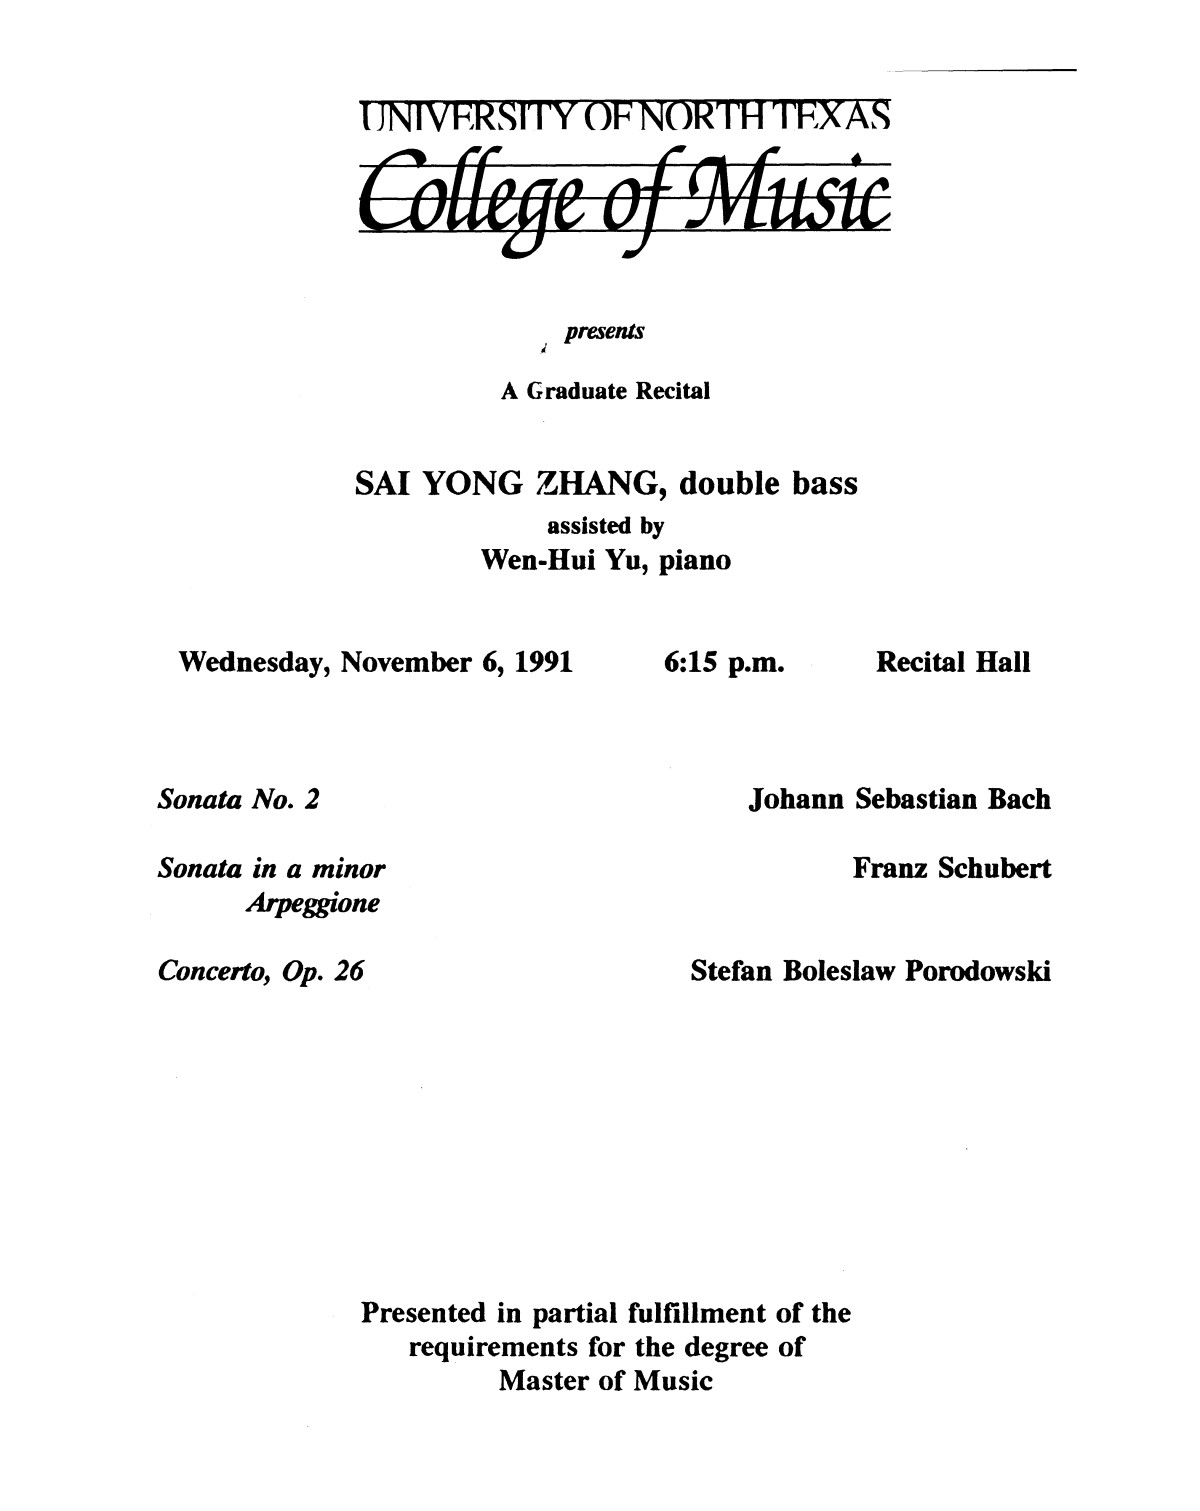 College of Music program book 1991-1992 Student Performances Vol. 2                                                                                                      [Sequence #]: 41 of 310